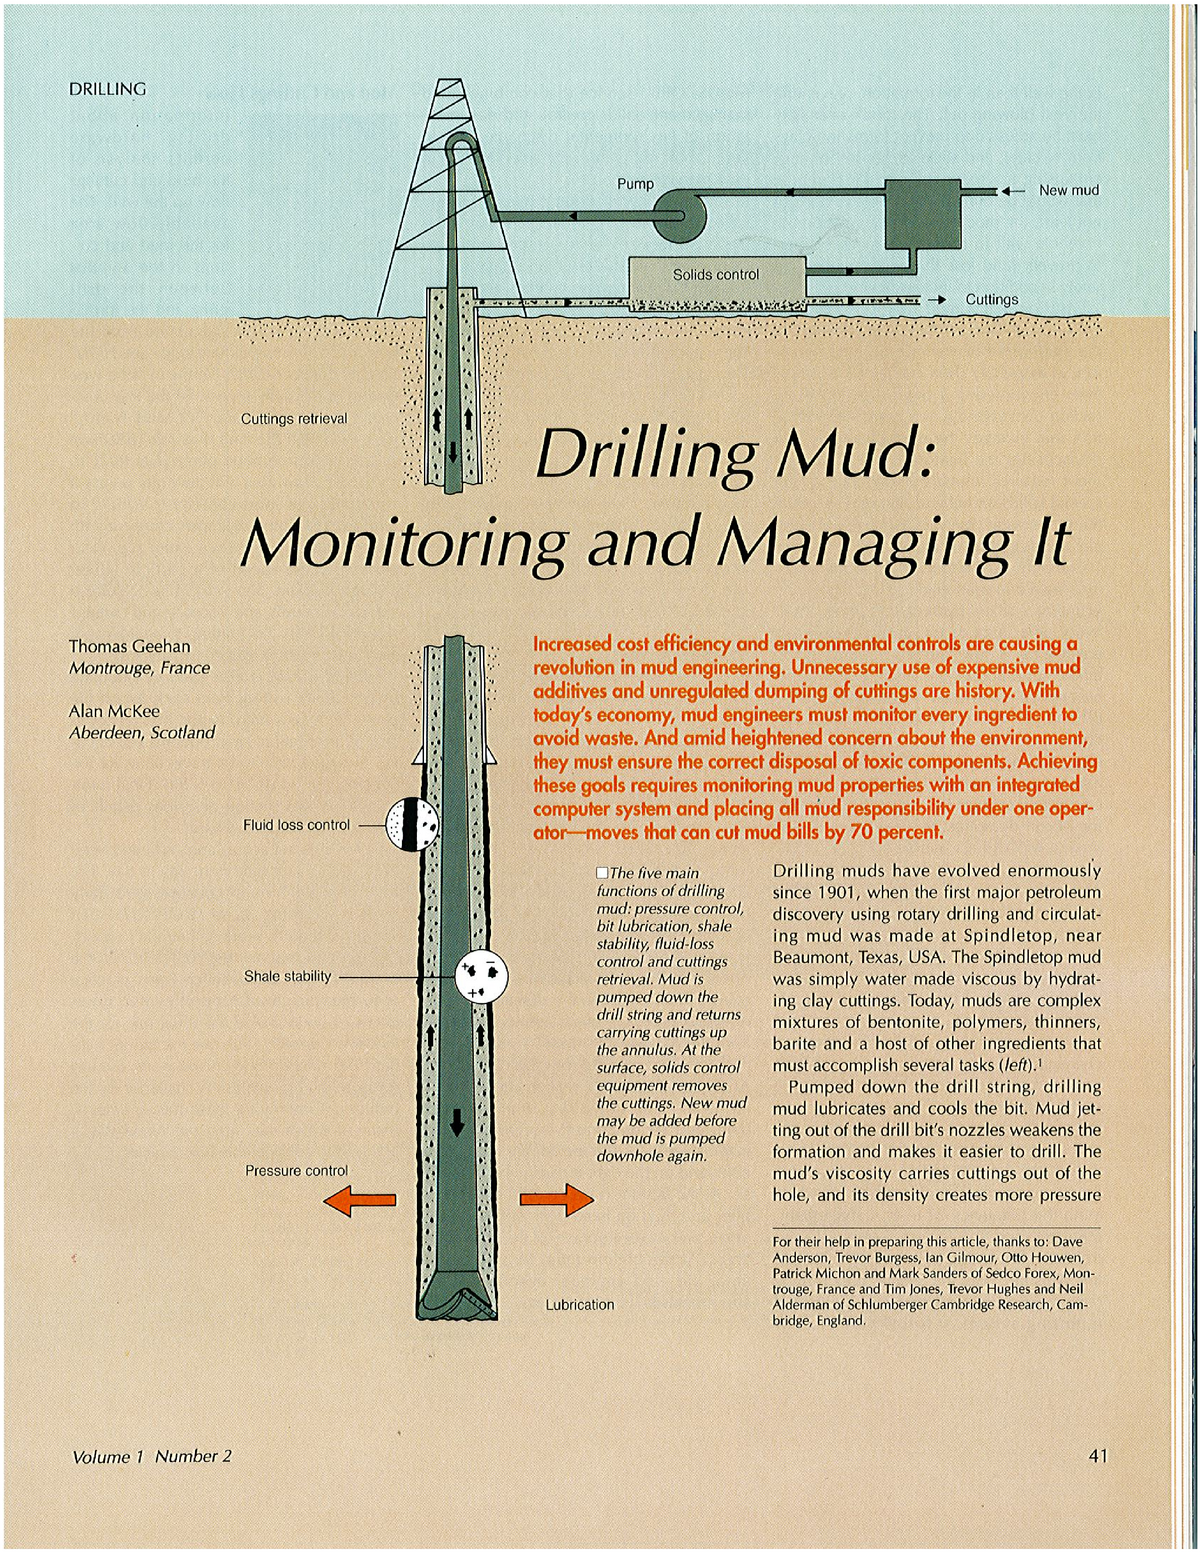 4 drilling mud - Lecture notes 1 - Pet 322e: Drilling Fluids